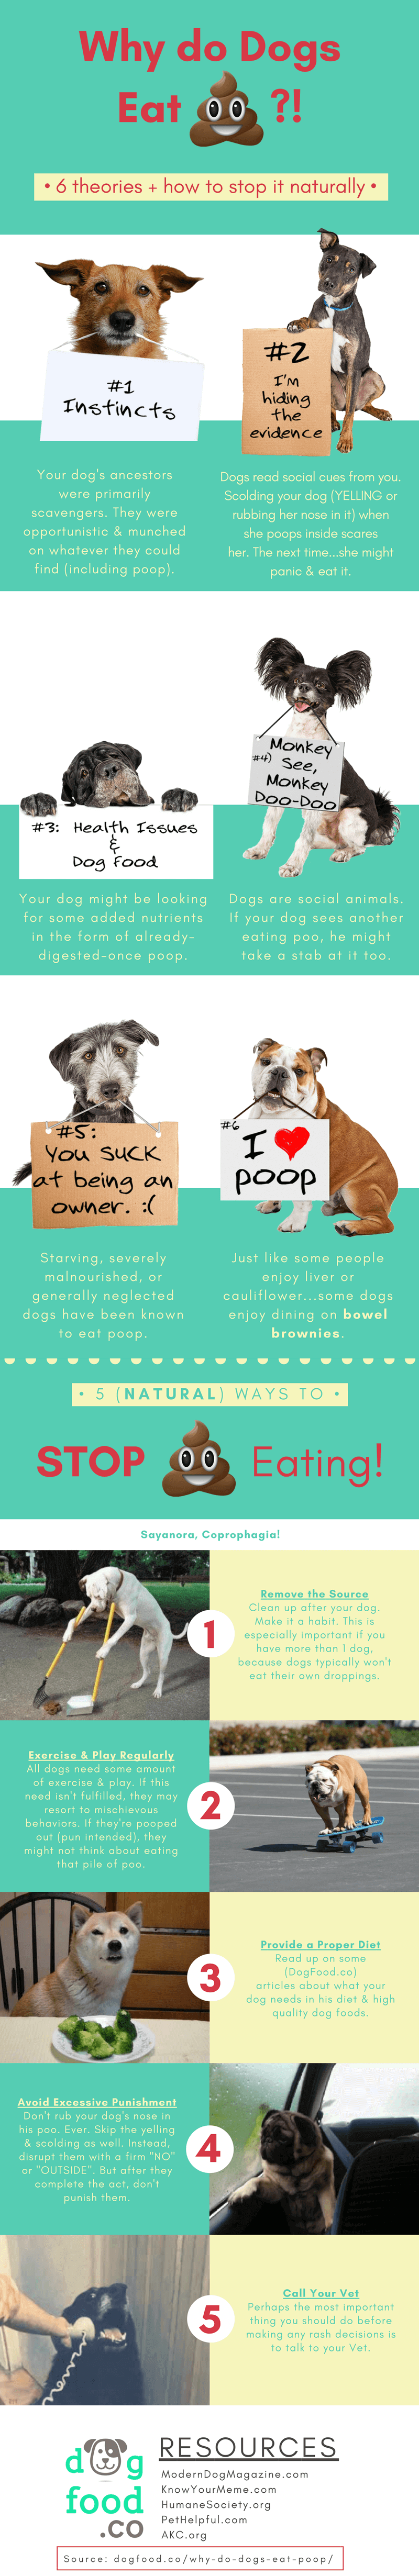 Why do dogs eat poop infographic